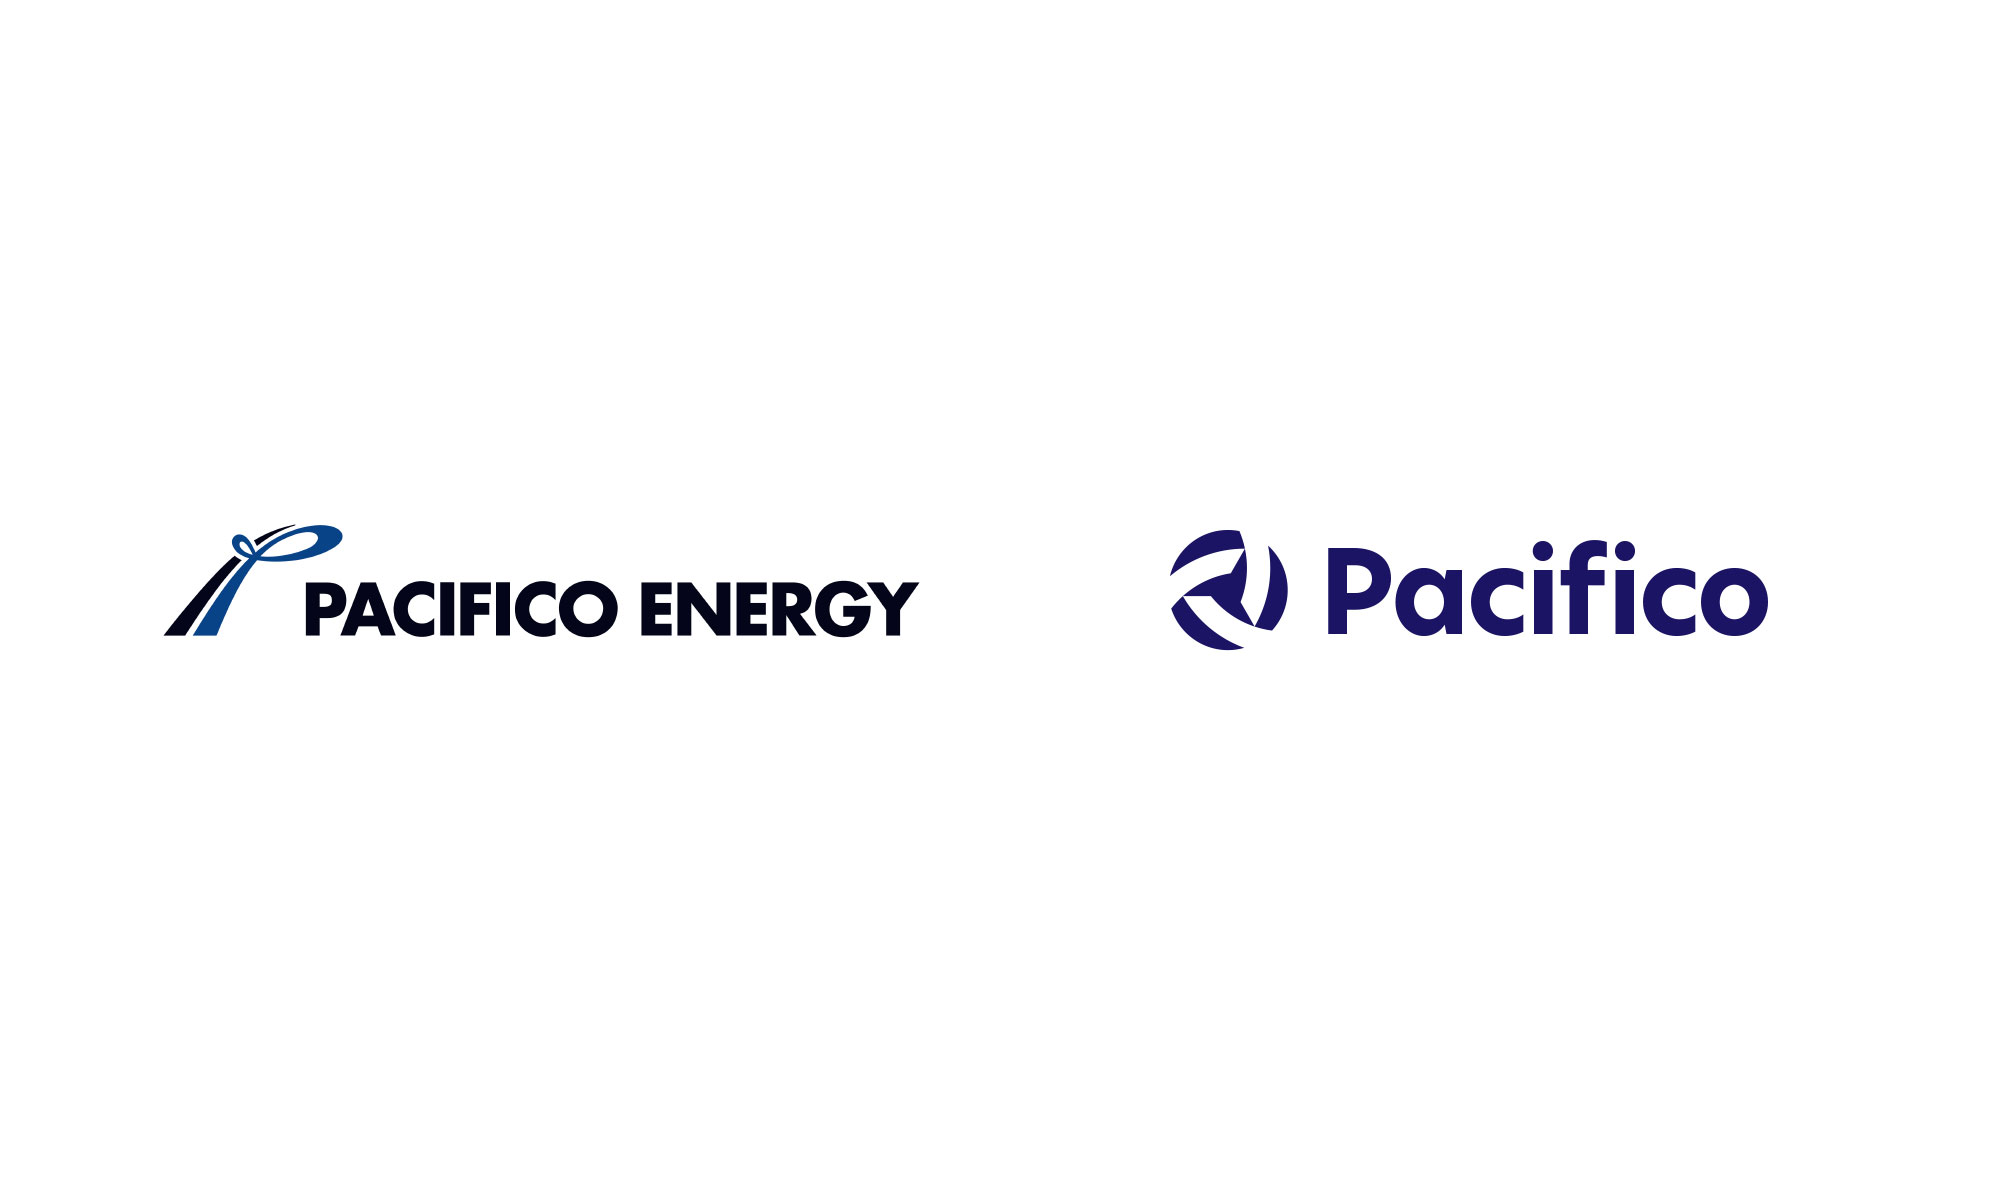 Pacifico Energy logo old new